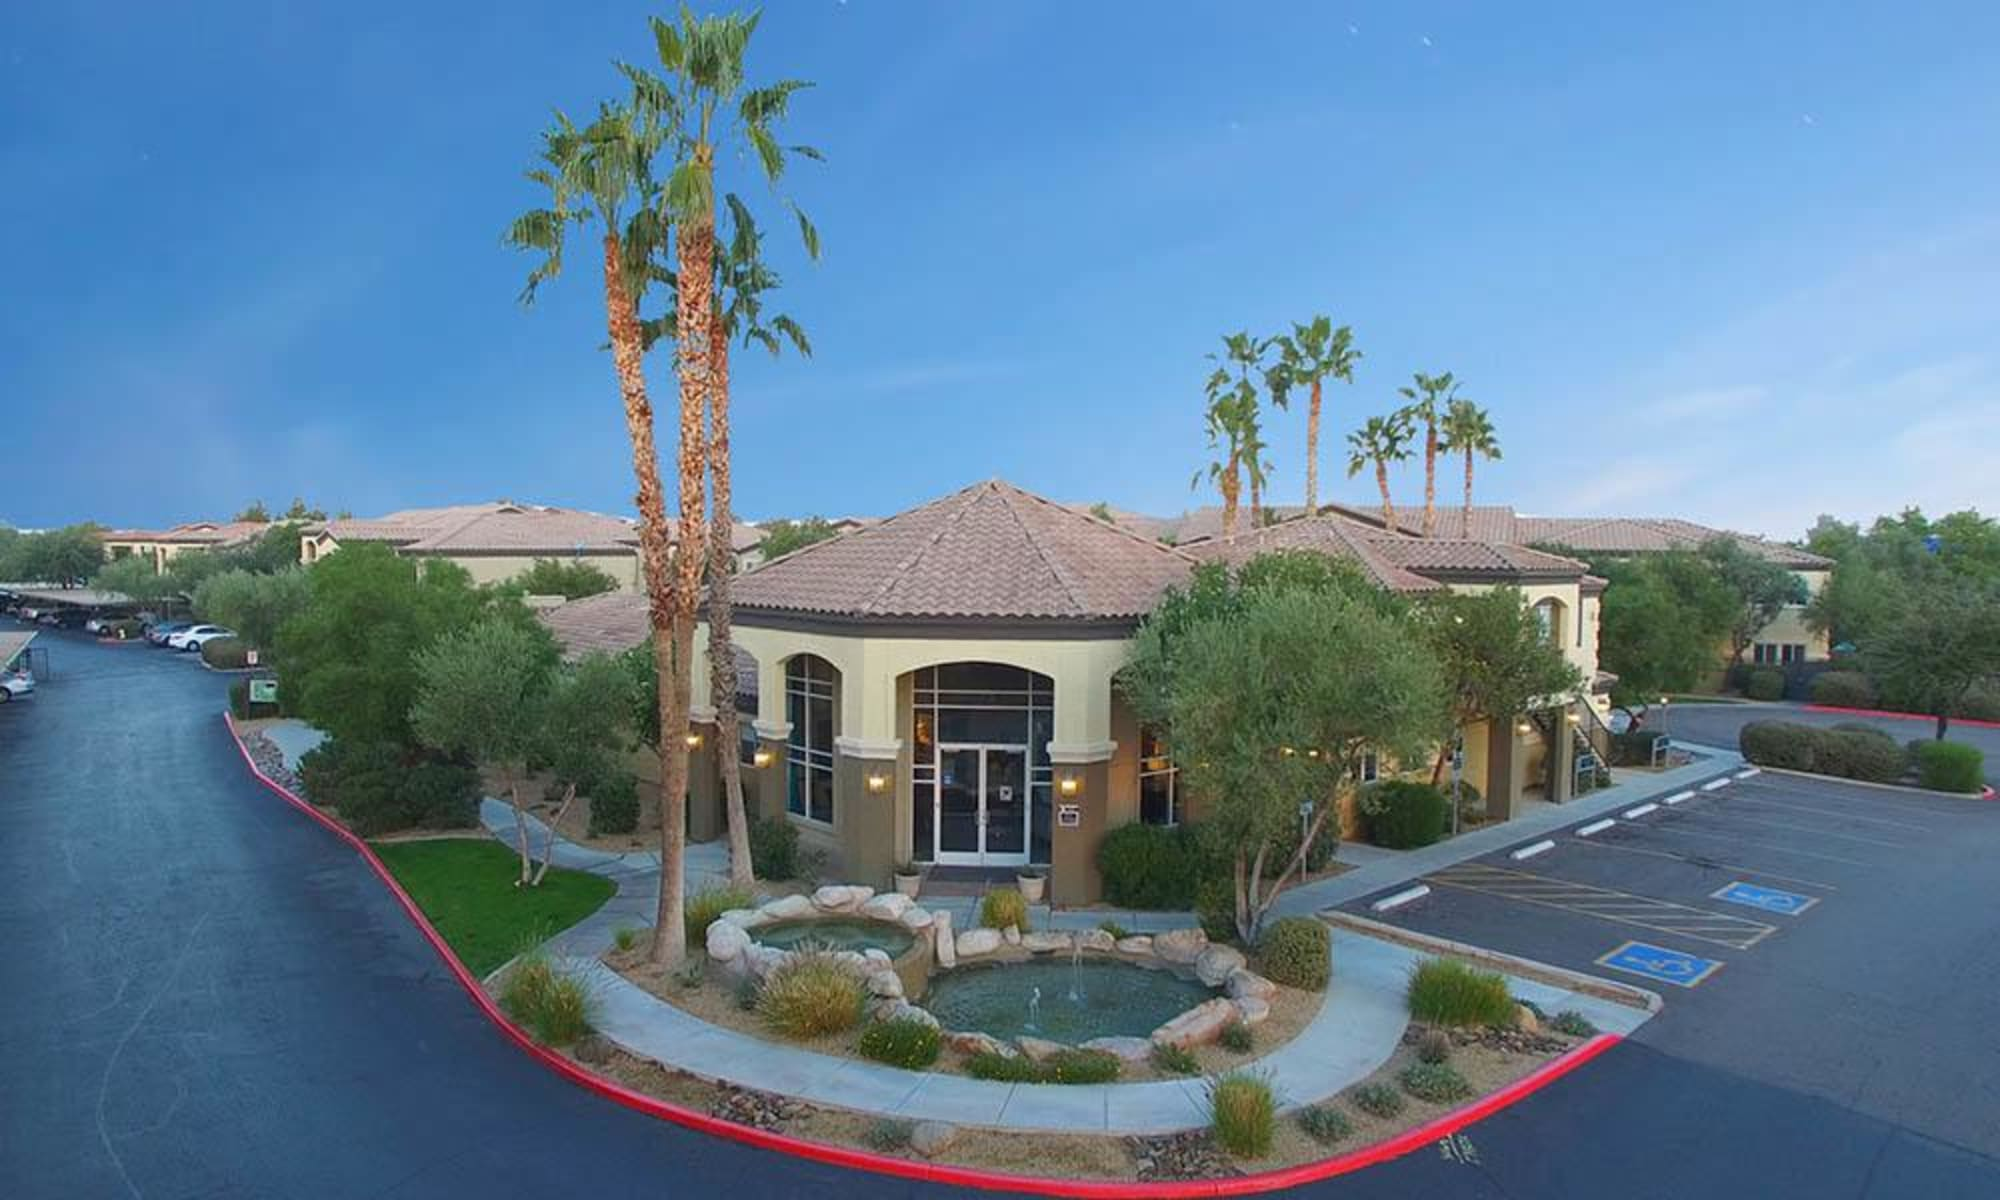 Photos of 2150 Arizona Ave South in Chandler, Arizona